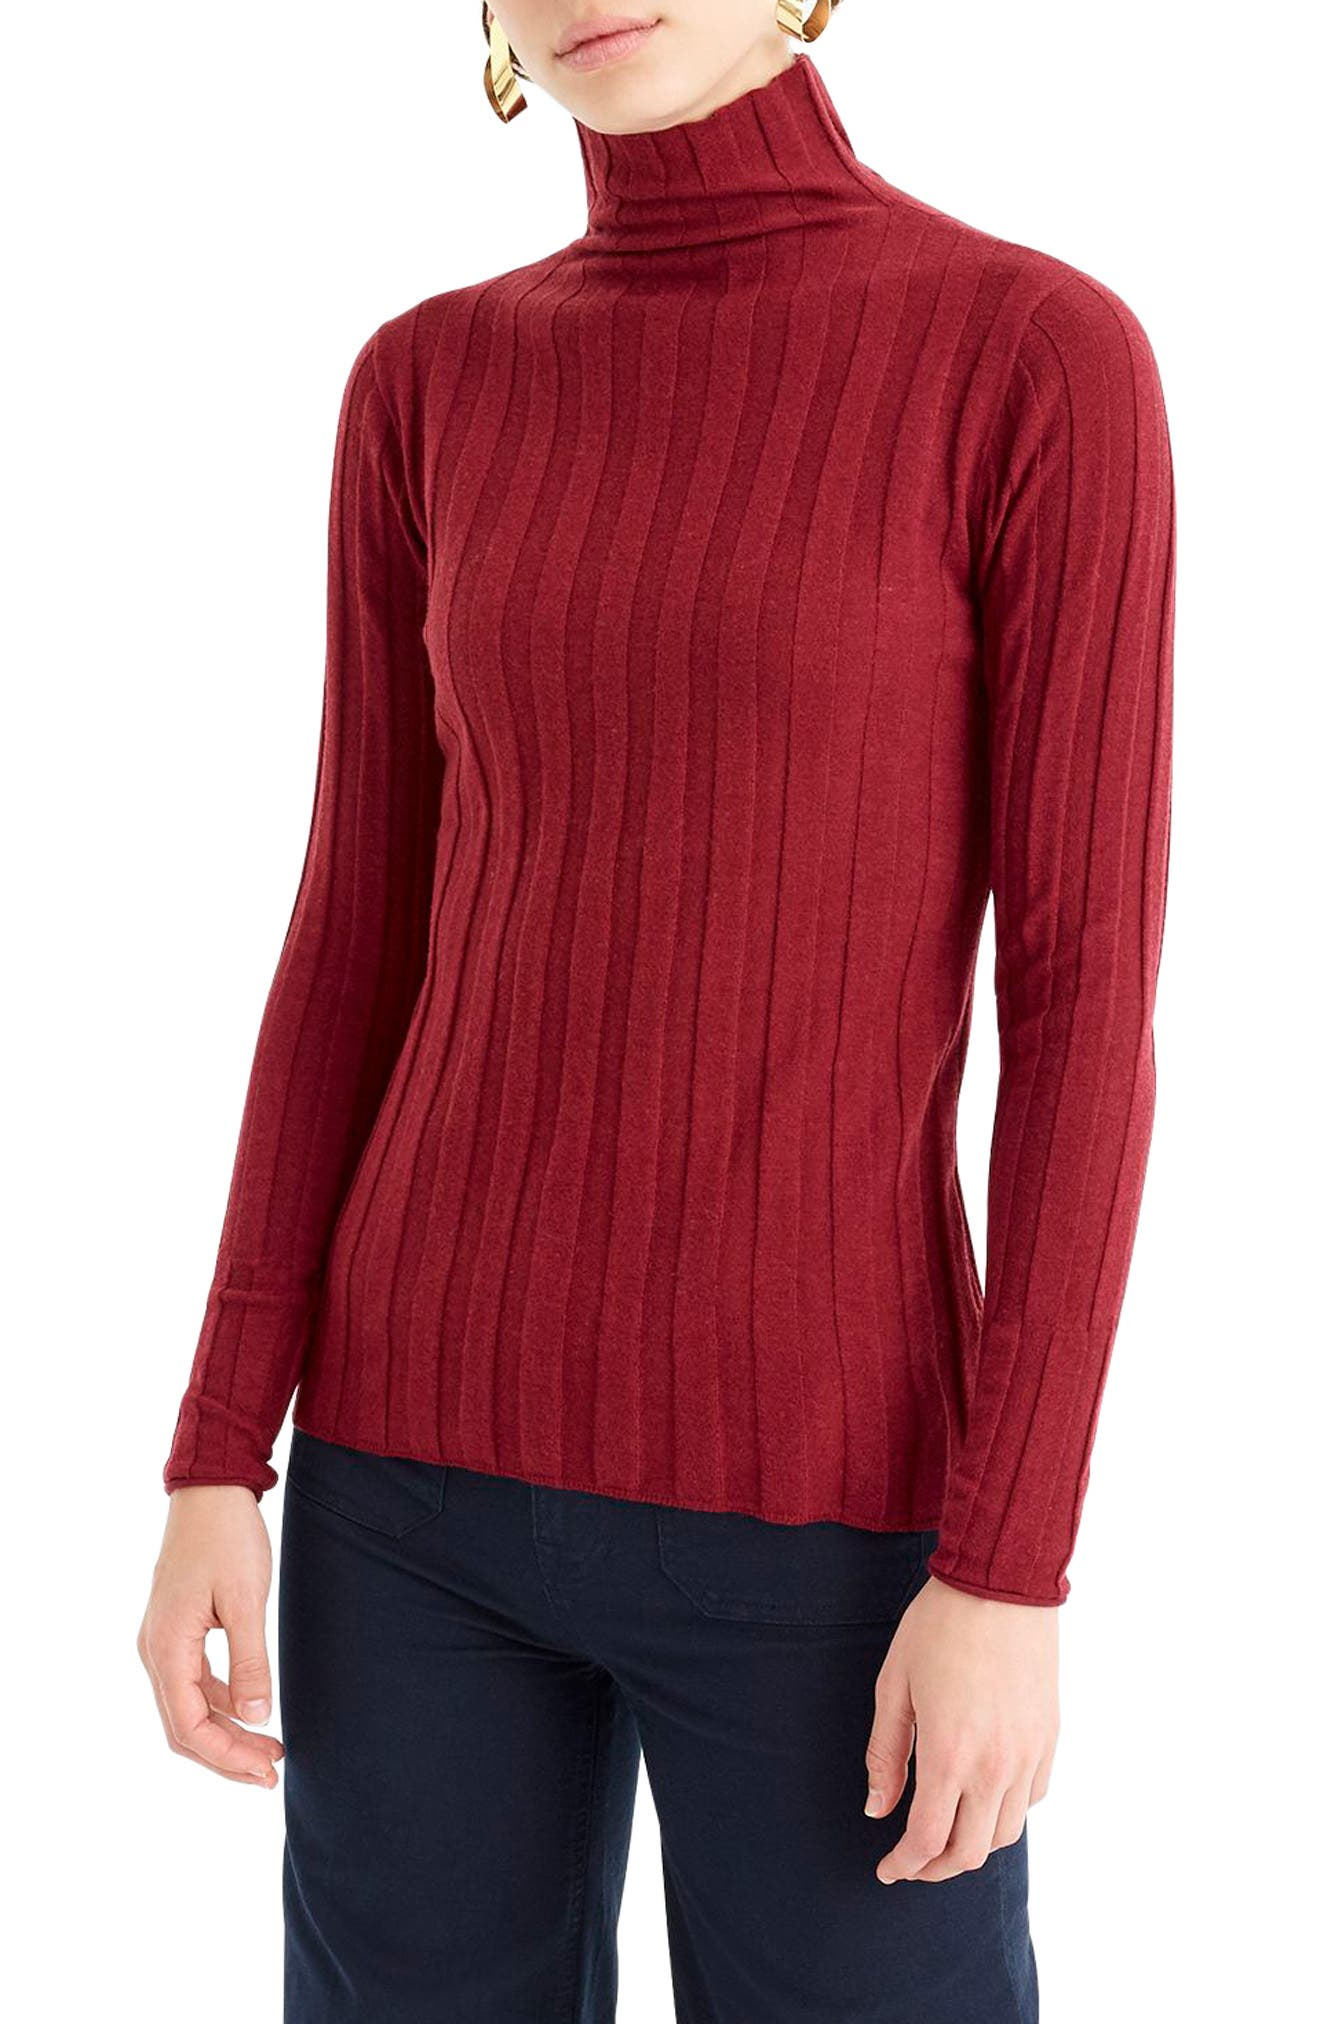 365 Stretch Ribbed Turtleneck Sweater,                             Main thumbnail 1, color,                             930